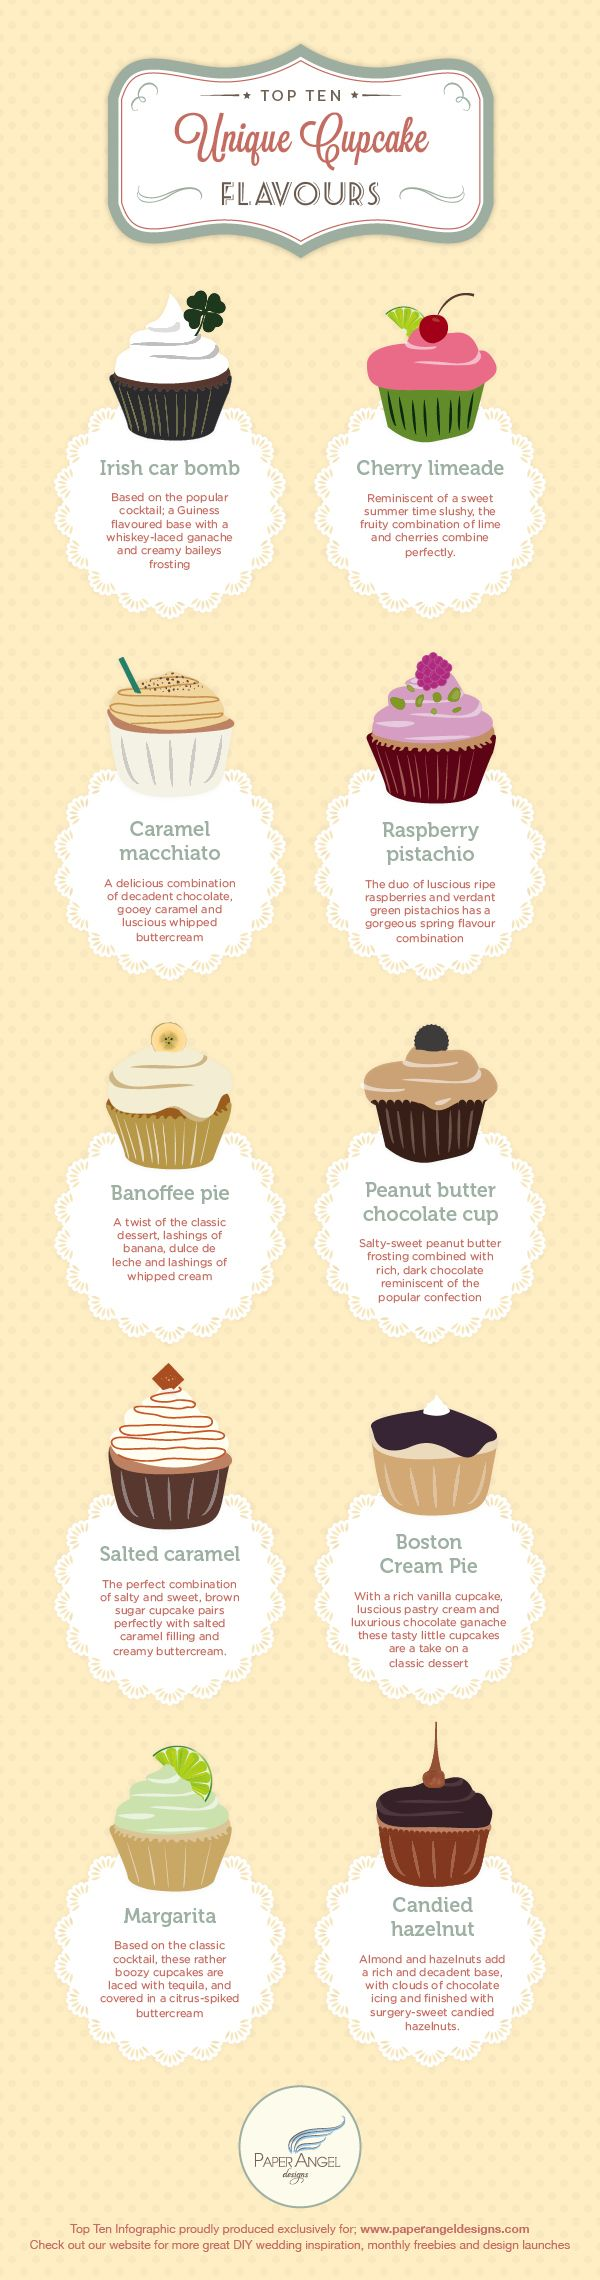 Top Ten Unique Cupcake Flavours - For all your cake decorating supplies, please visit craftcompany.co.uk